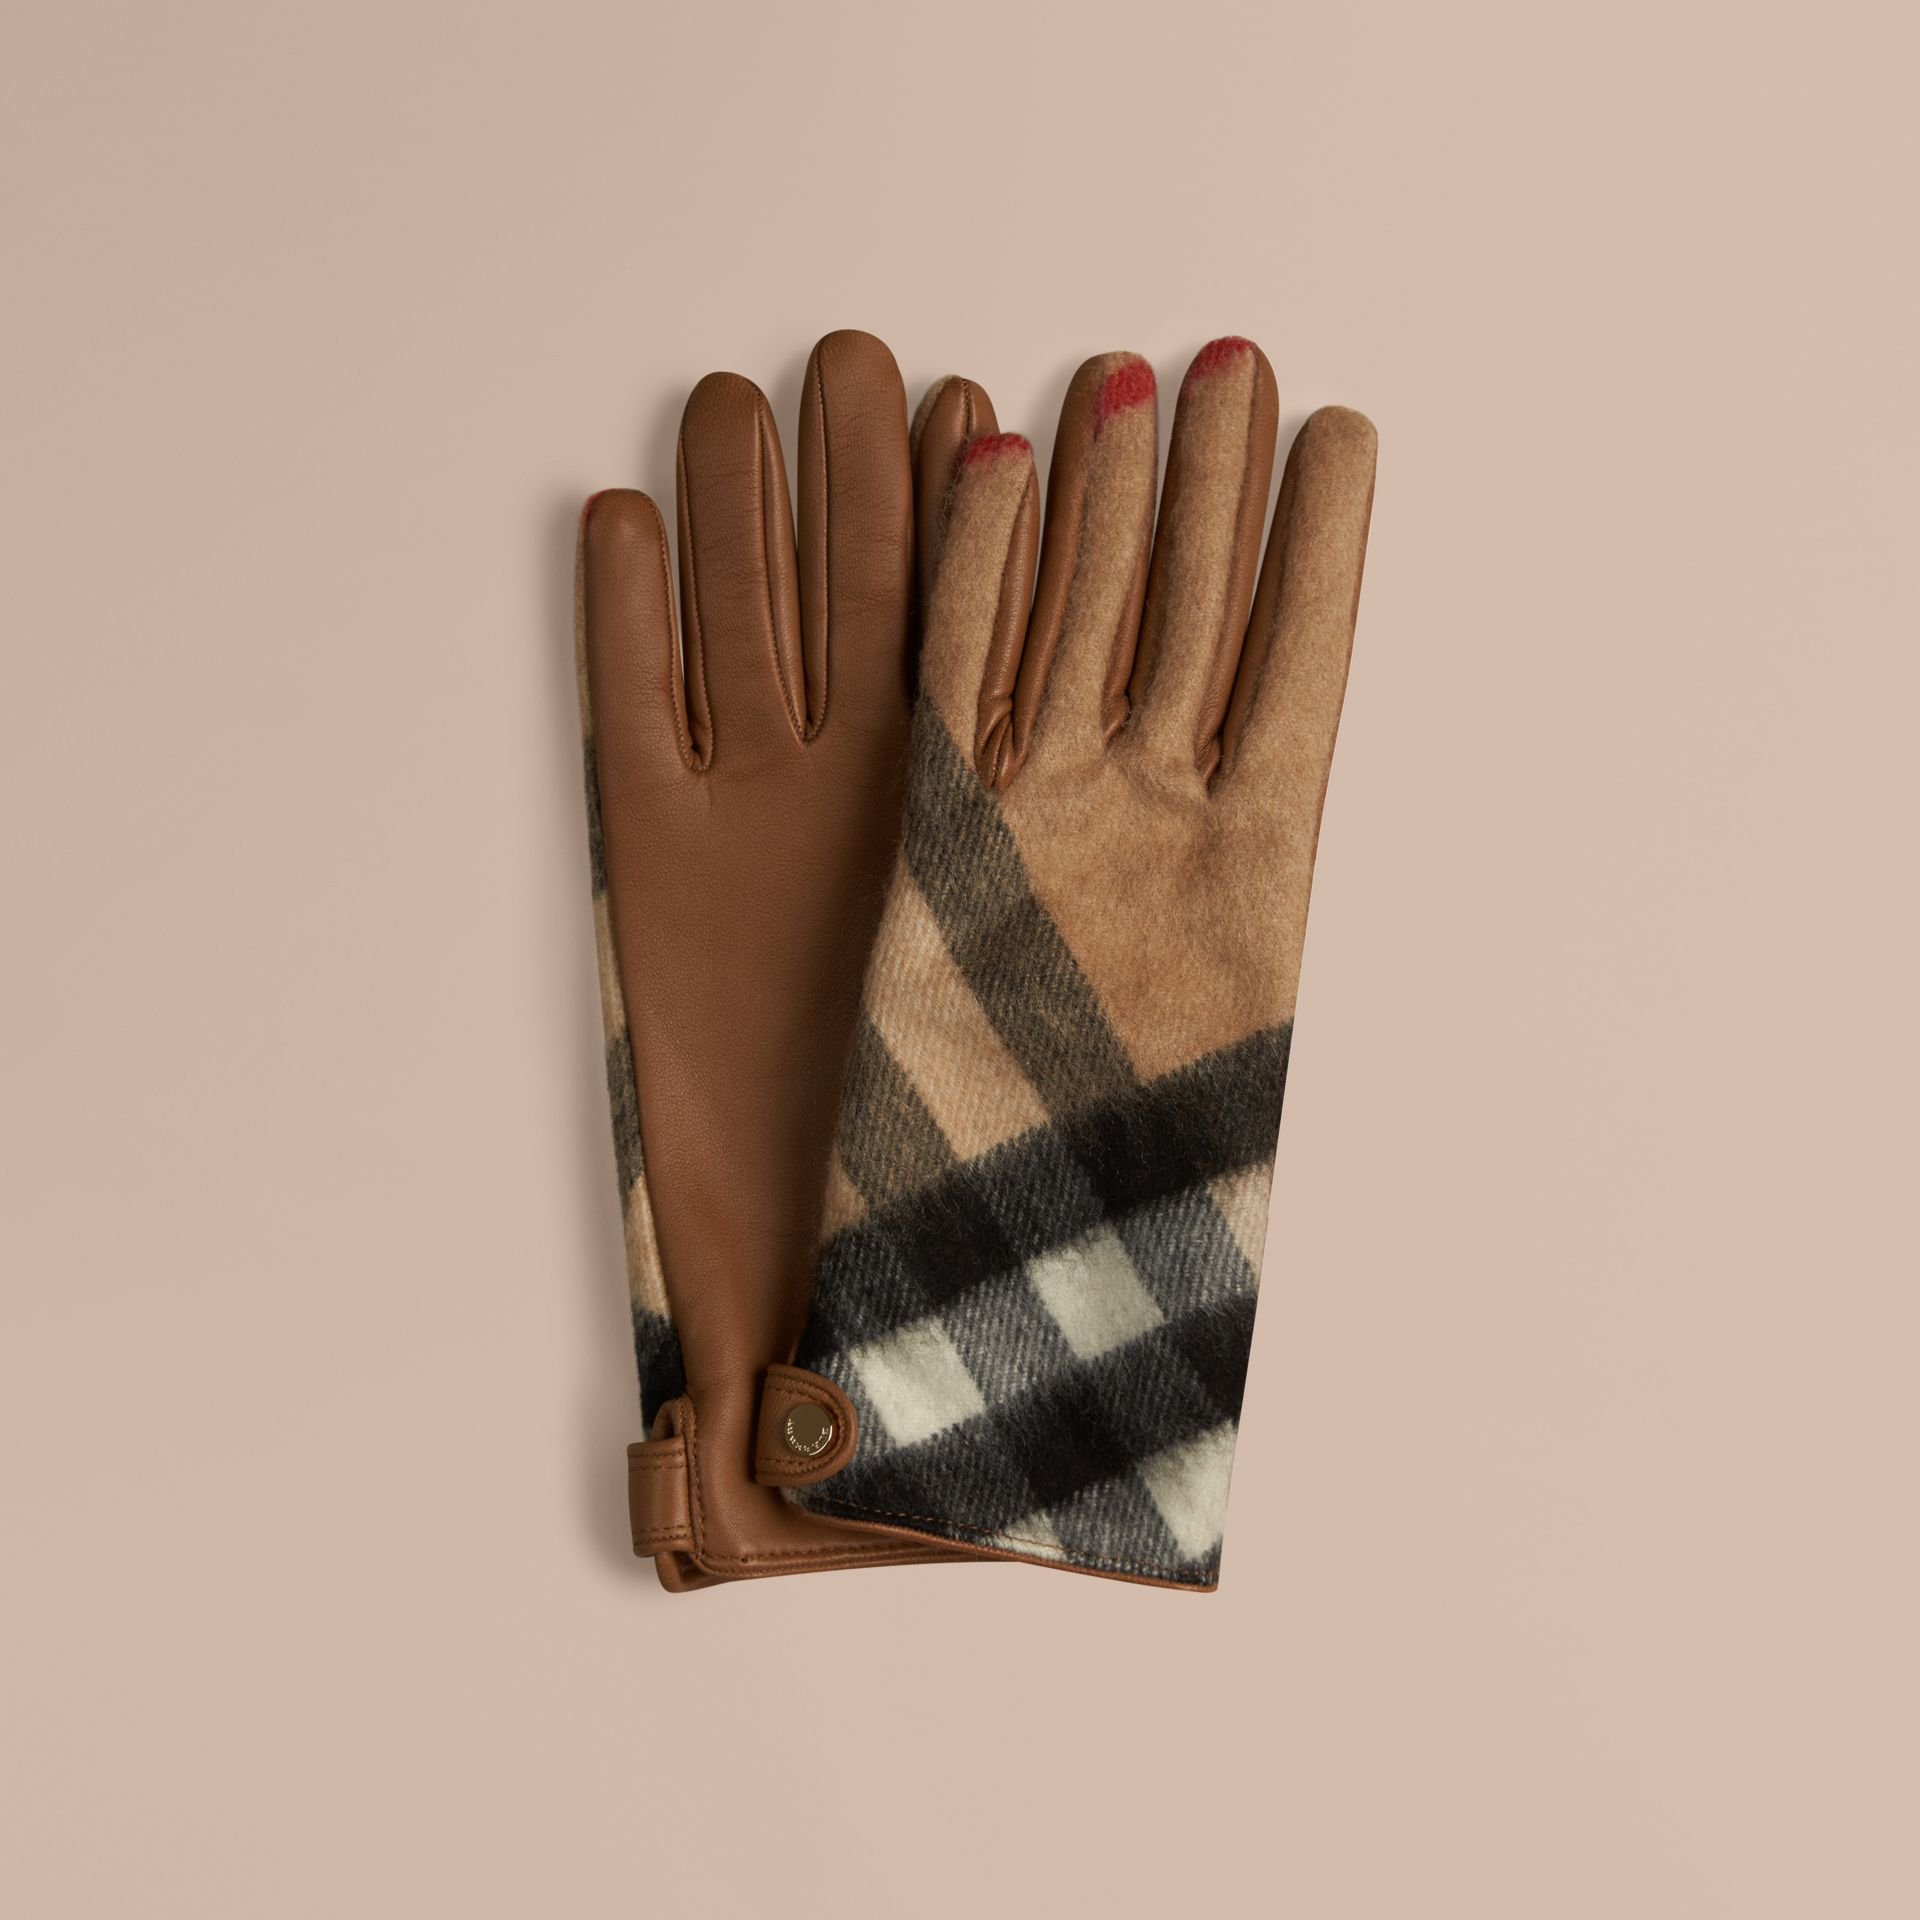 Leather and Check Cashmere Gloves in Camel - Women | Burberry - gallery image 1